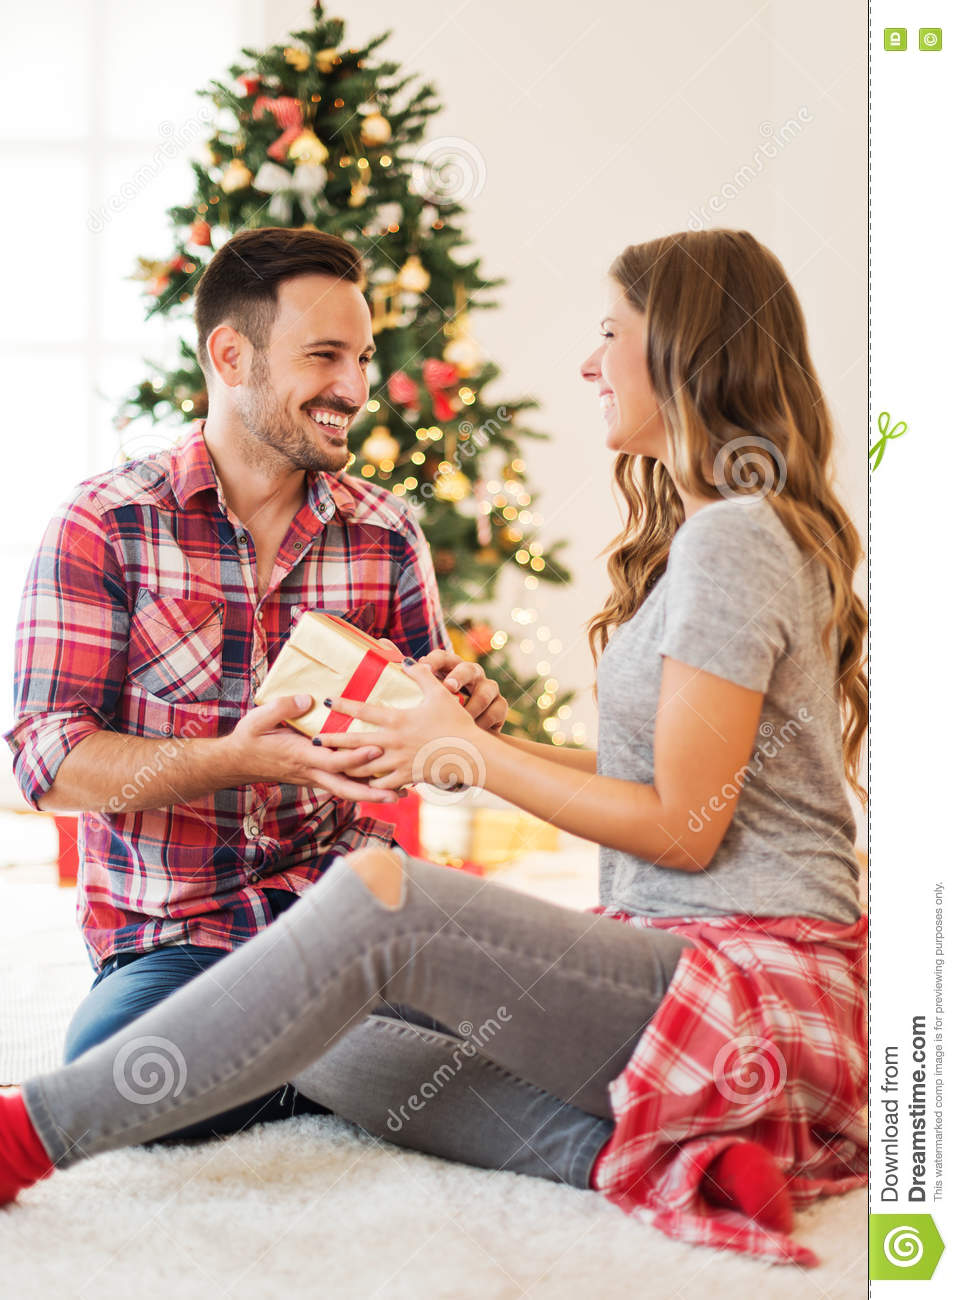 Cute couple exchanging Christmas presents on Christmas morning